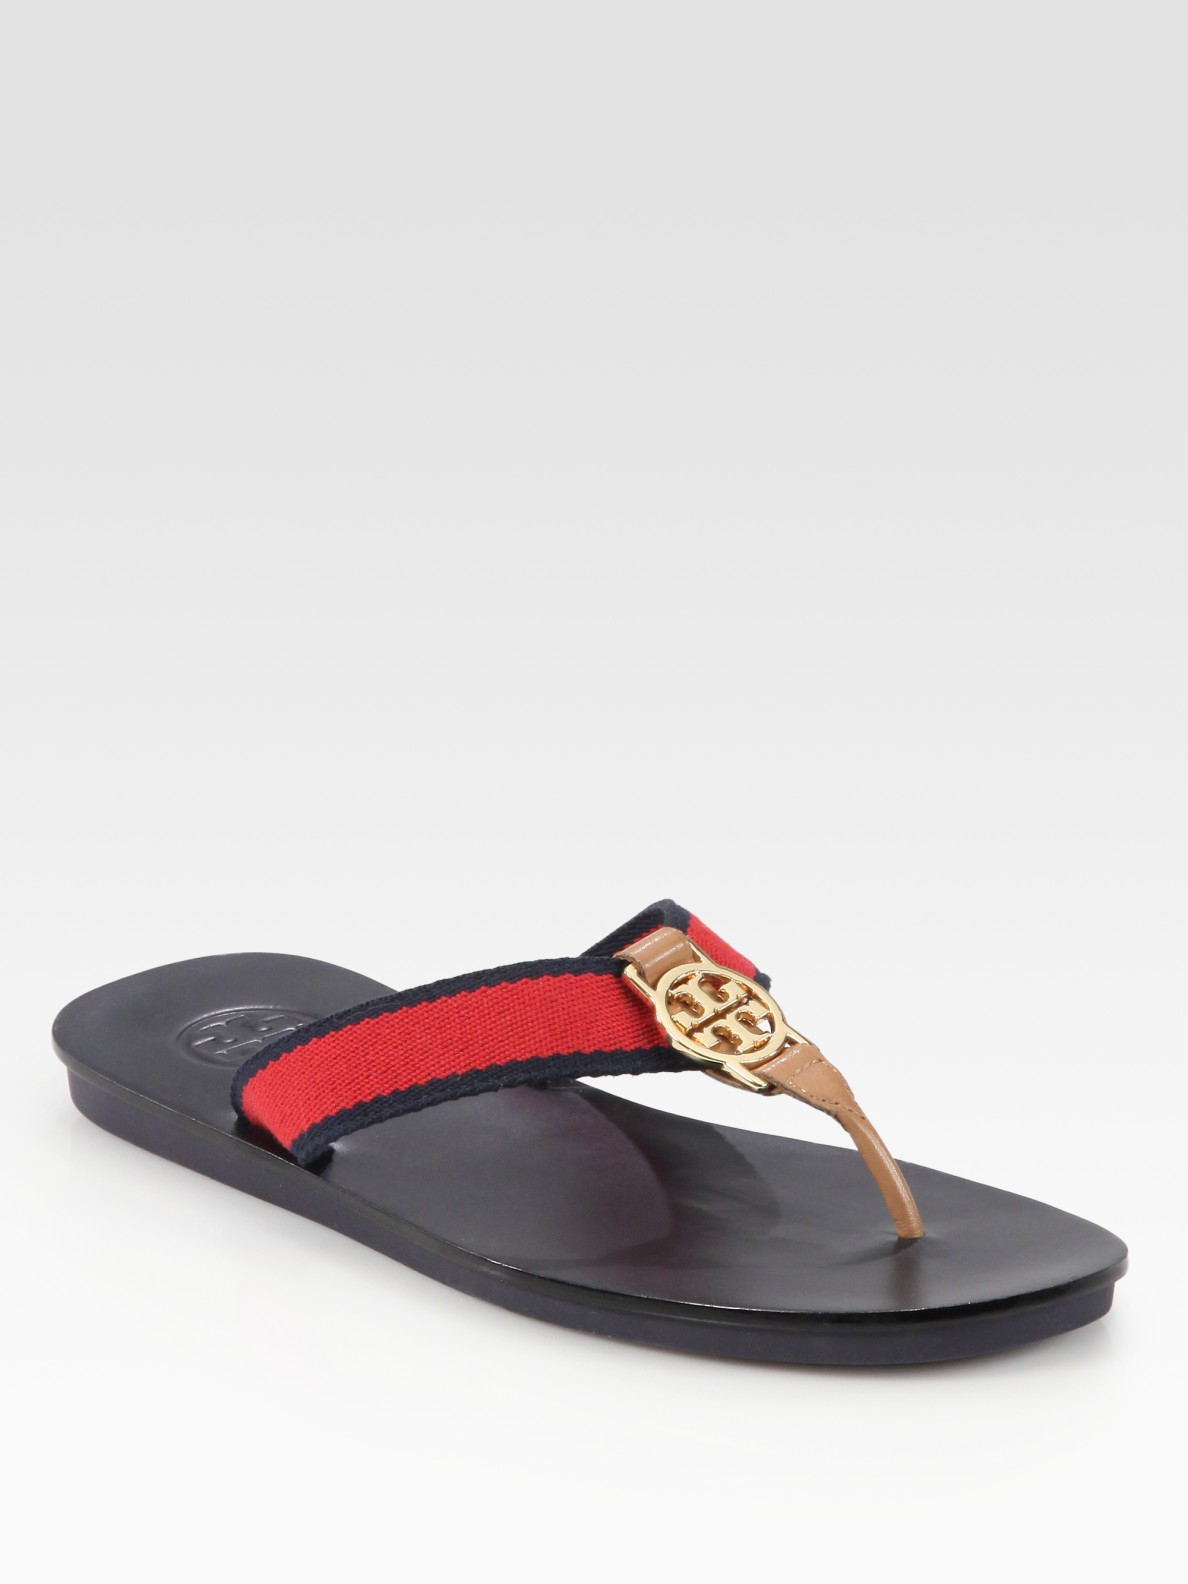 25e20469a36c Lyst - Tory Burch Lise Leather-trim Canvas Logo Thong Sandals in Red